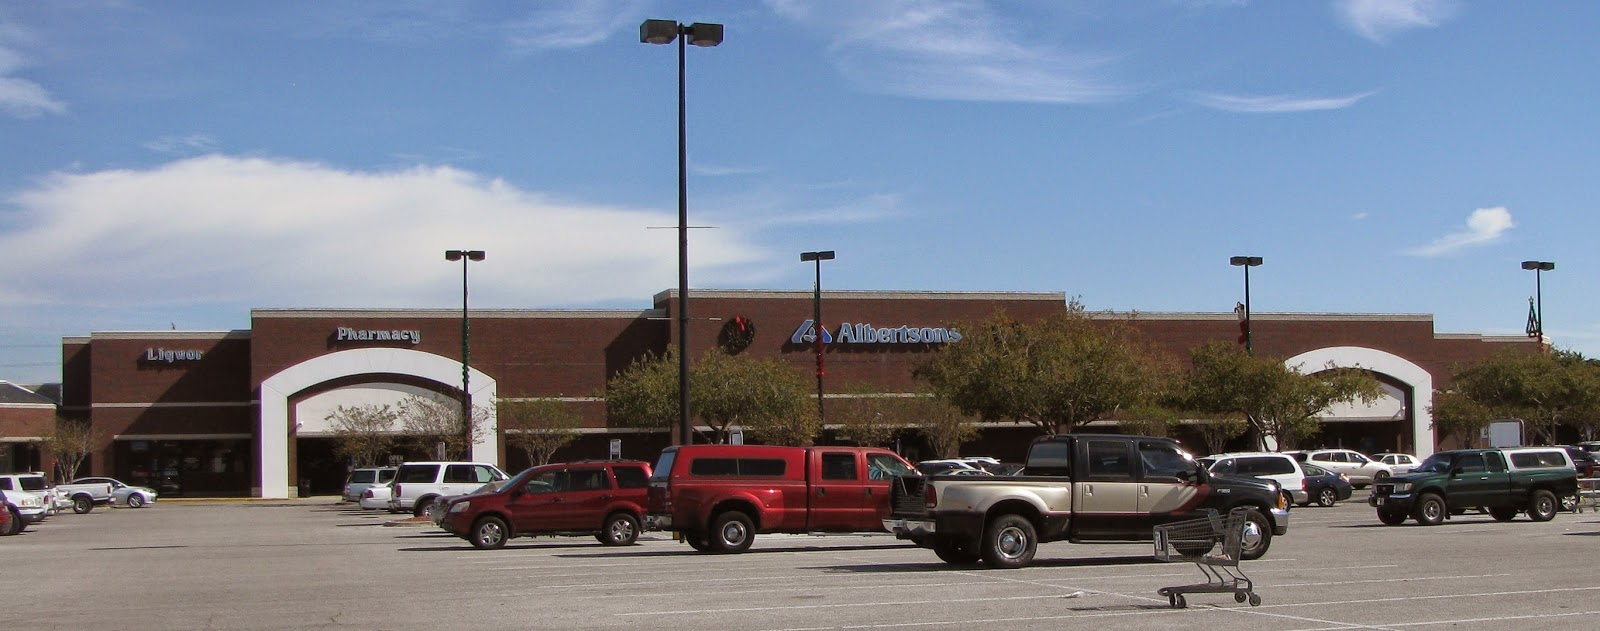 albertsons florida blog a quick glimpse albertsons 4402